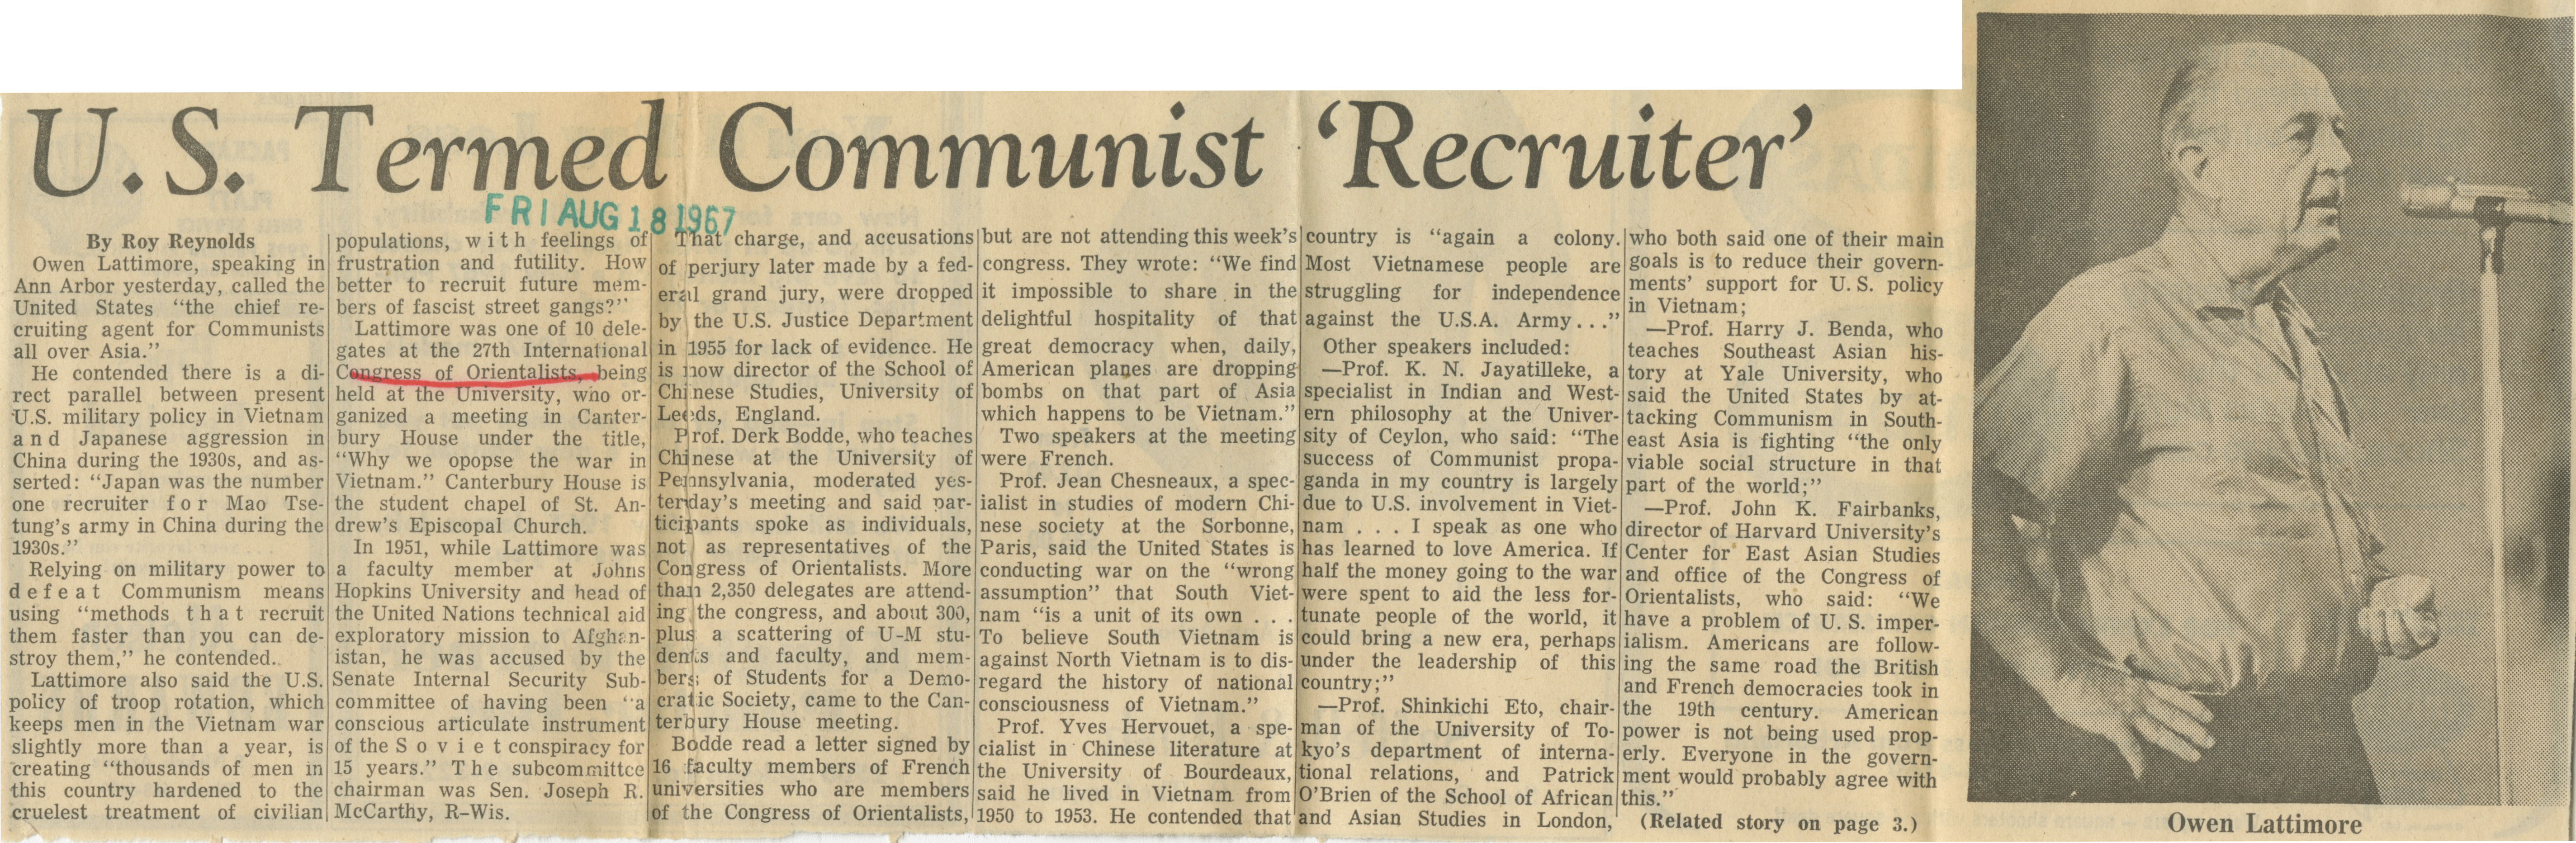 U. S. Termed Communist Recruiter image